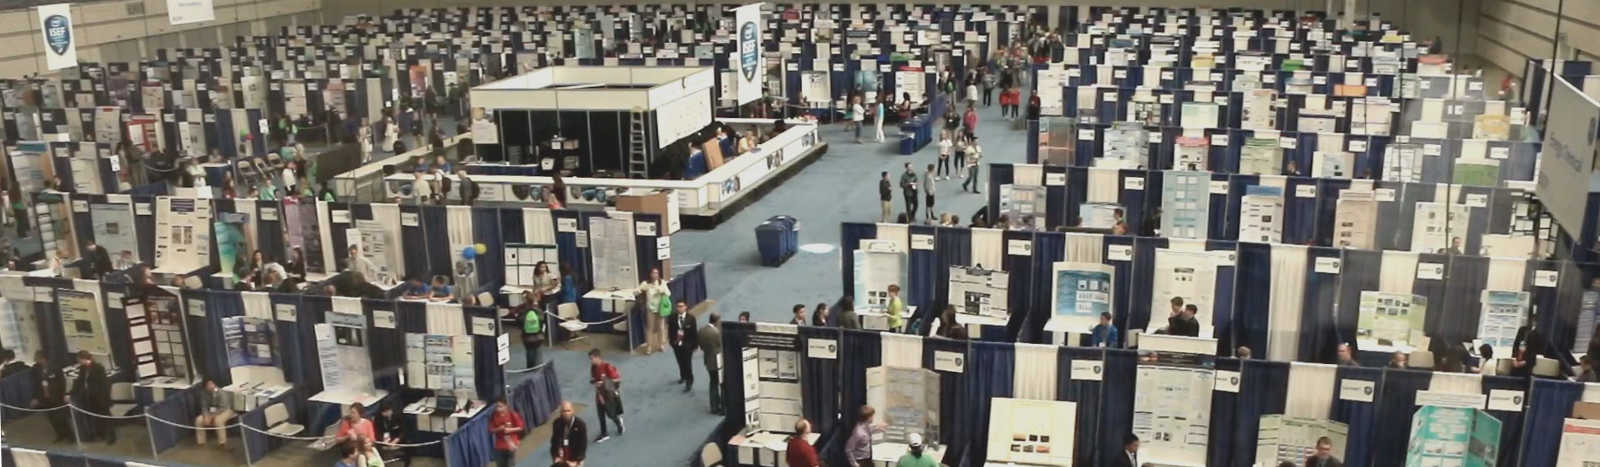 an event hall field with science fair booths